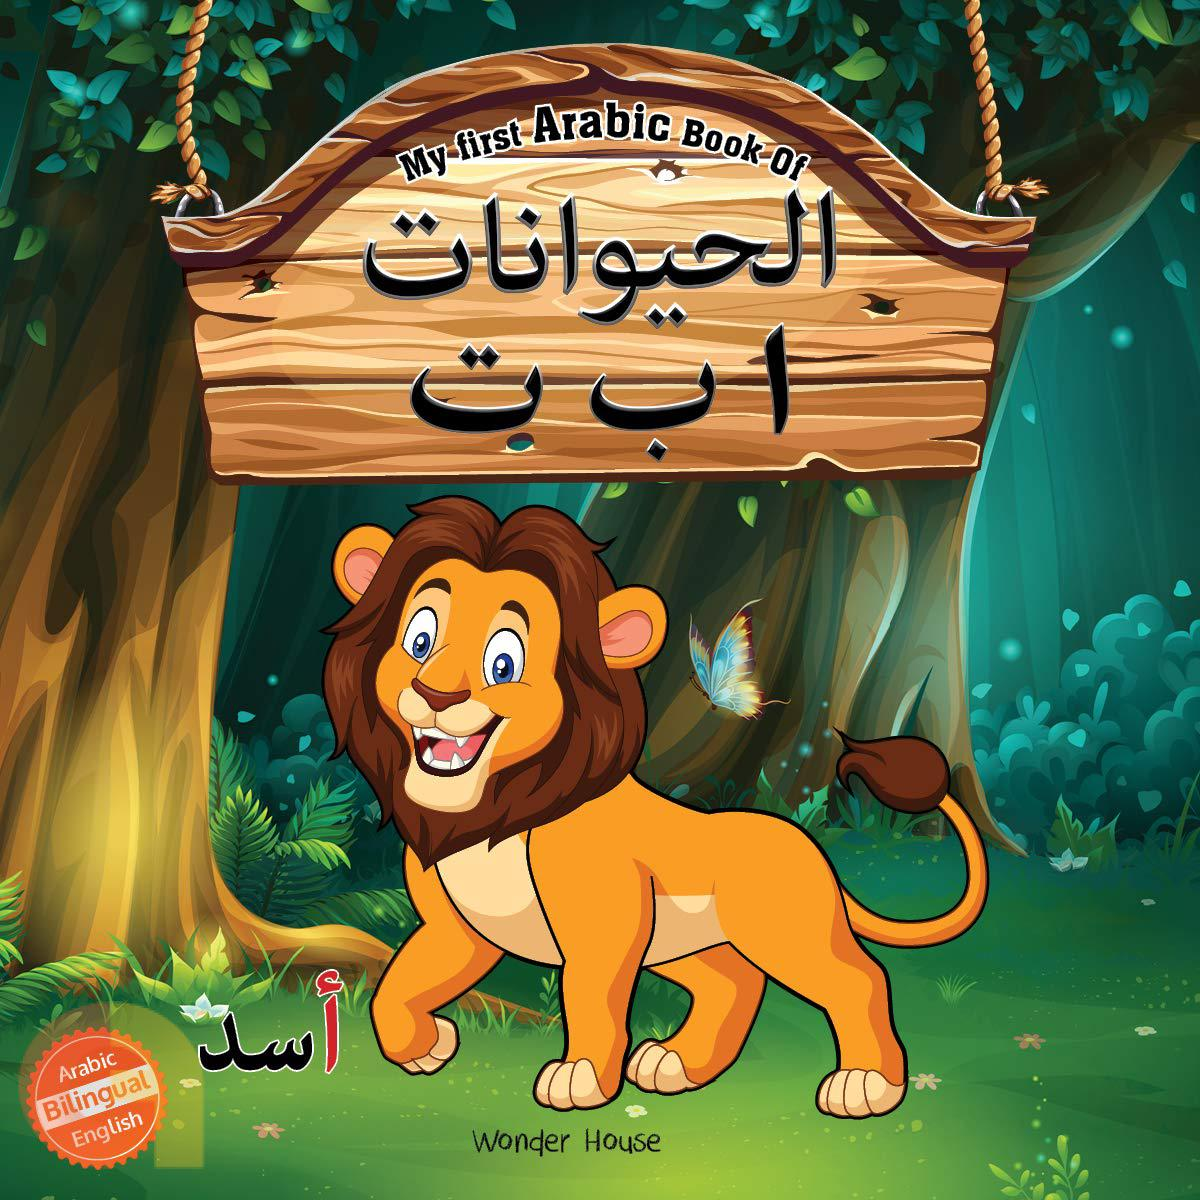 My first Arabic book of Animal ABC